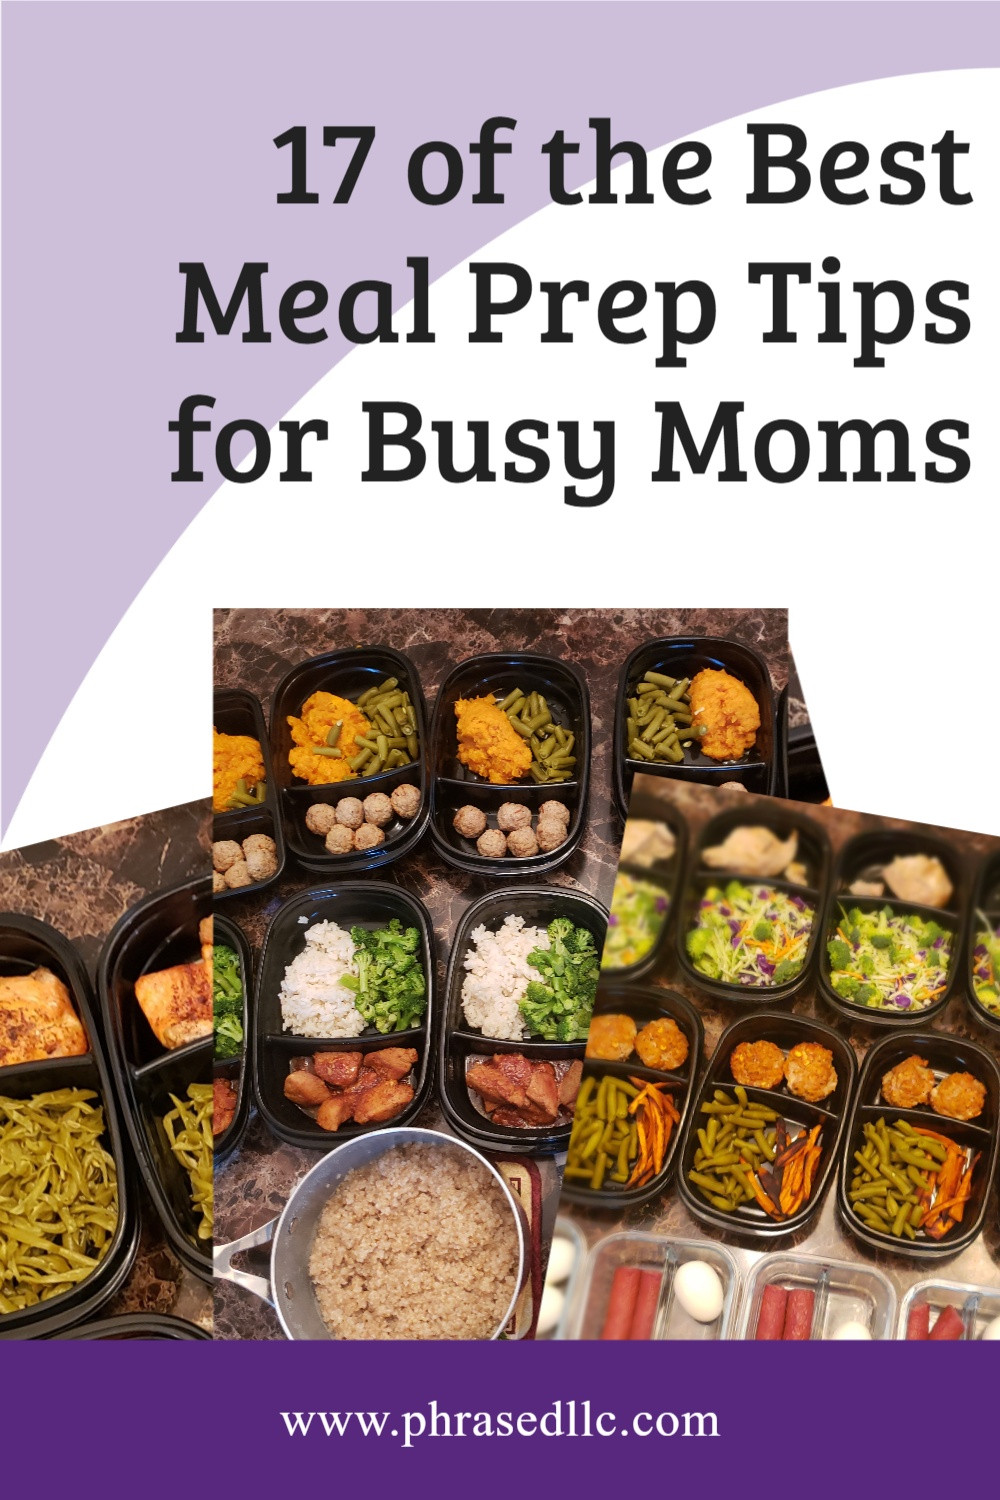 Healthy meal prep tips for busy moms to use while achieving their fitness goals.